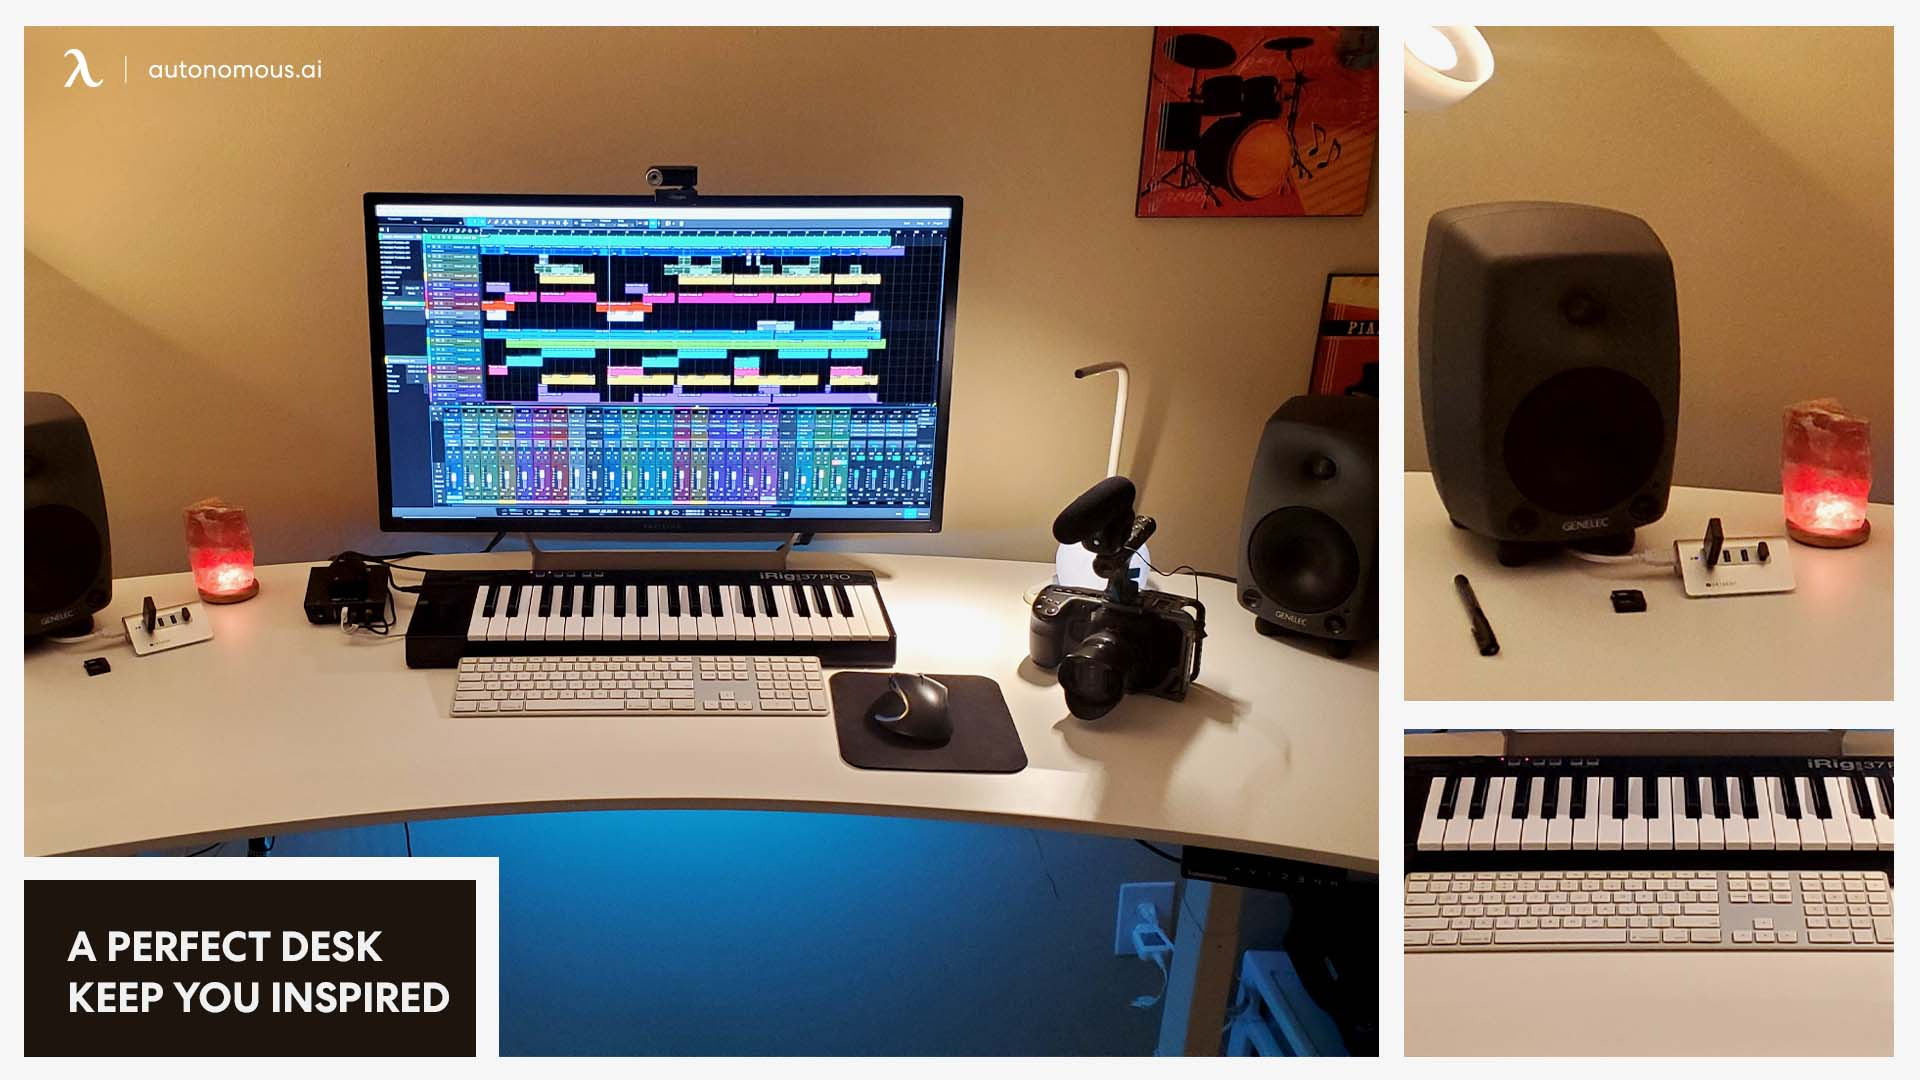 Photo of a perfect desk setup for artists to keep you inspired